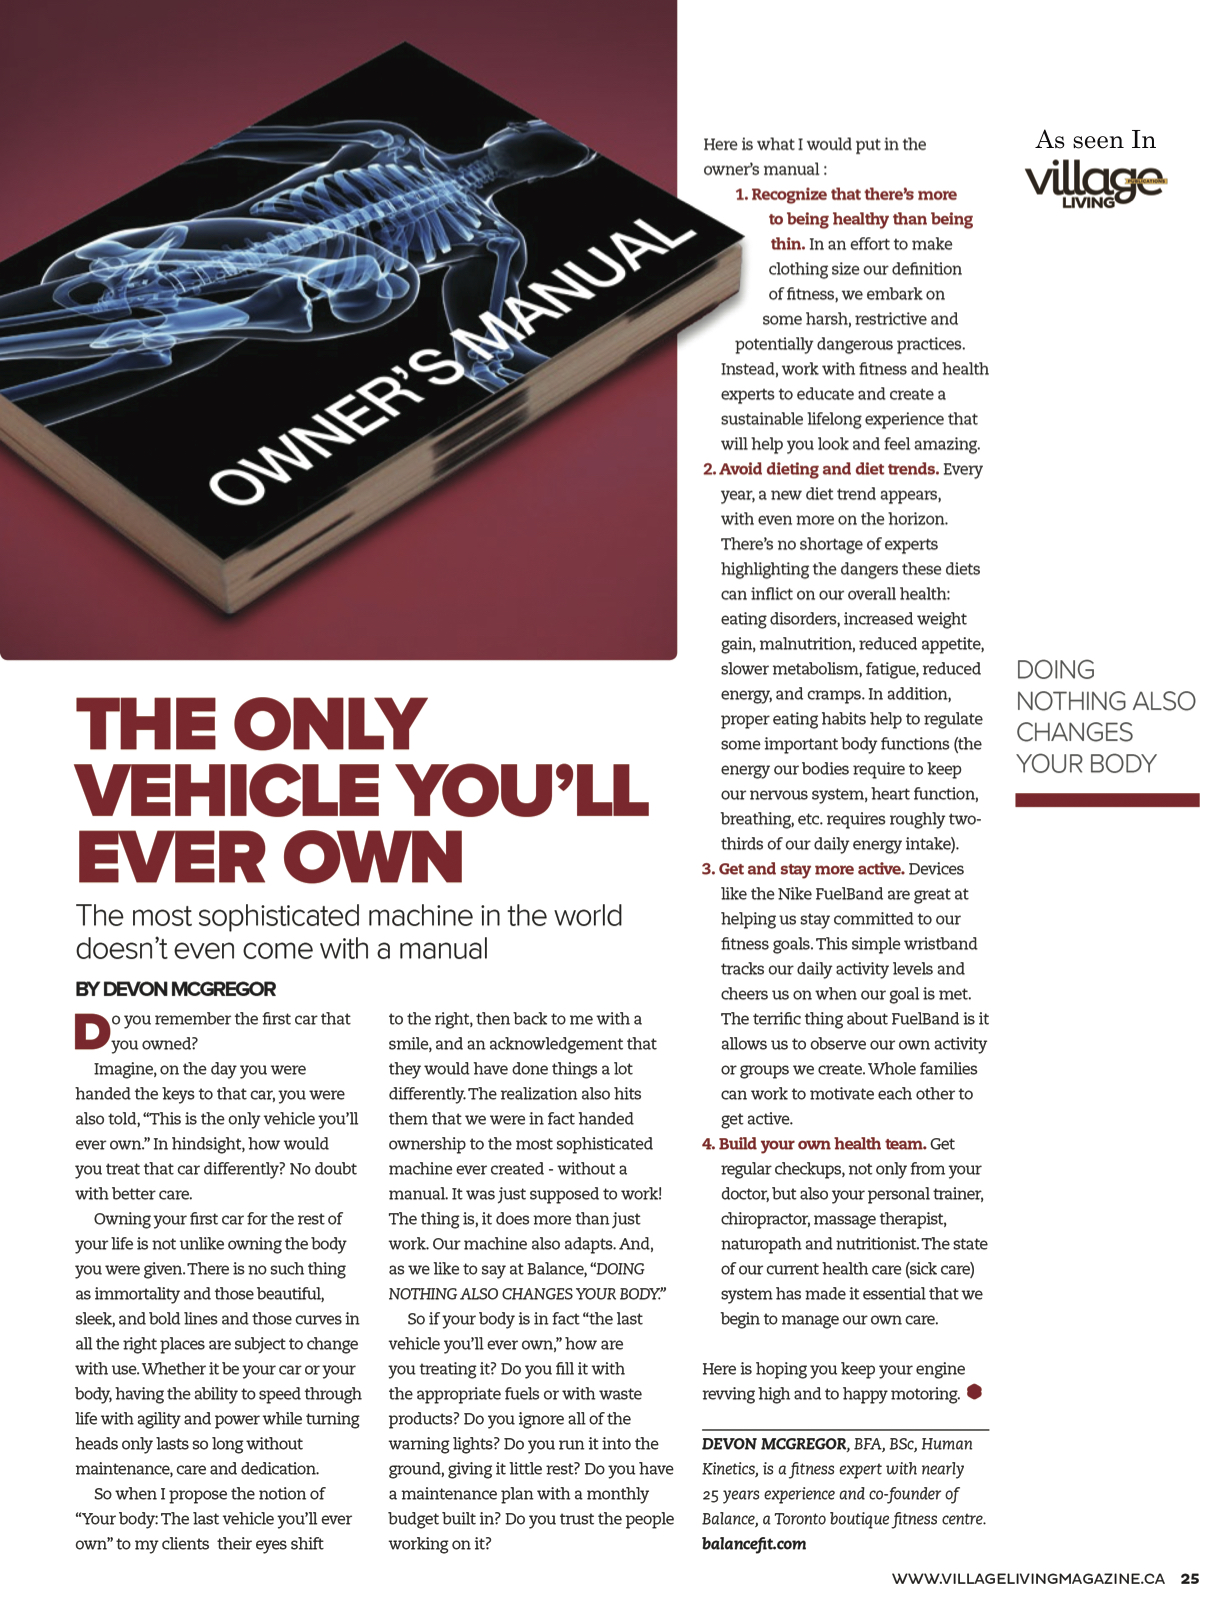 %22The Only Vehicle You'll Ever Own%22_Village Living Publication.jpg